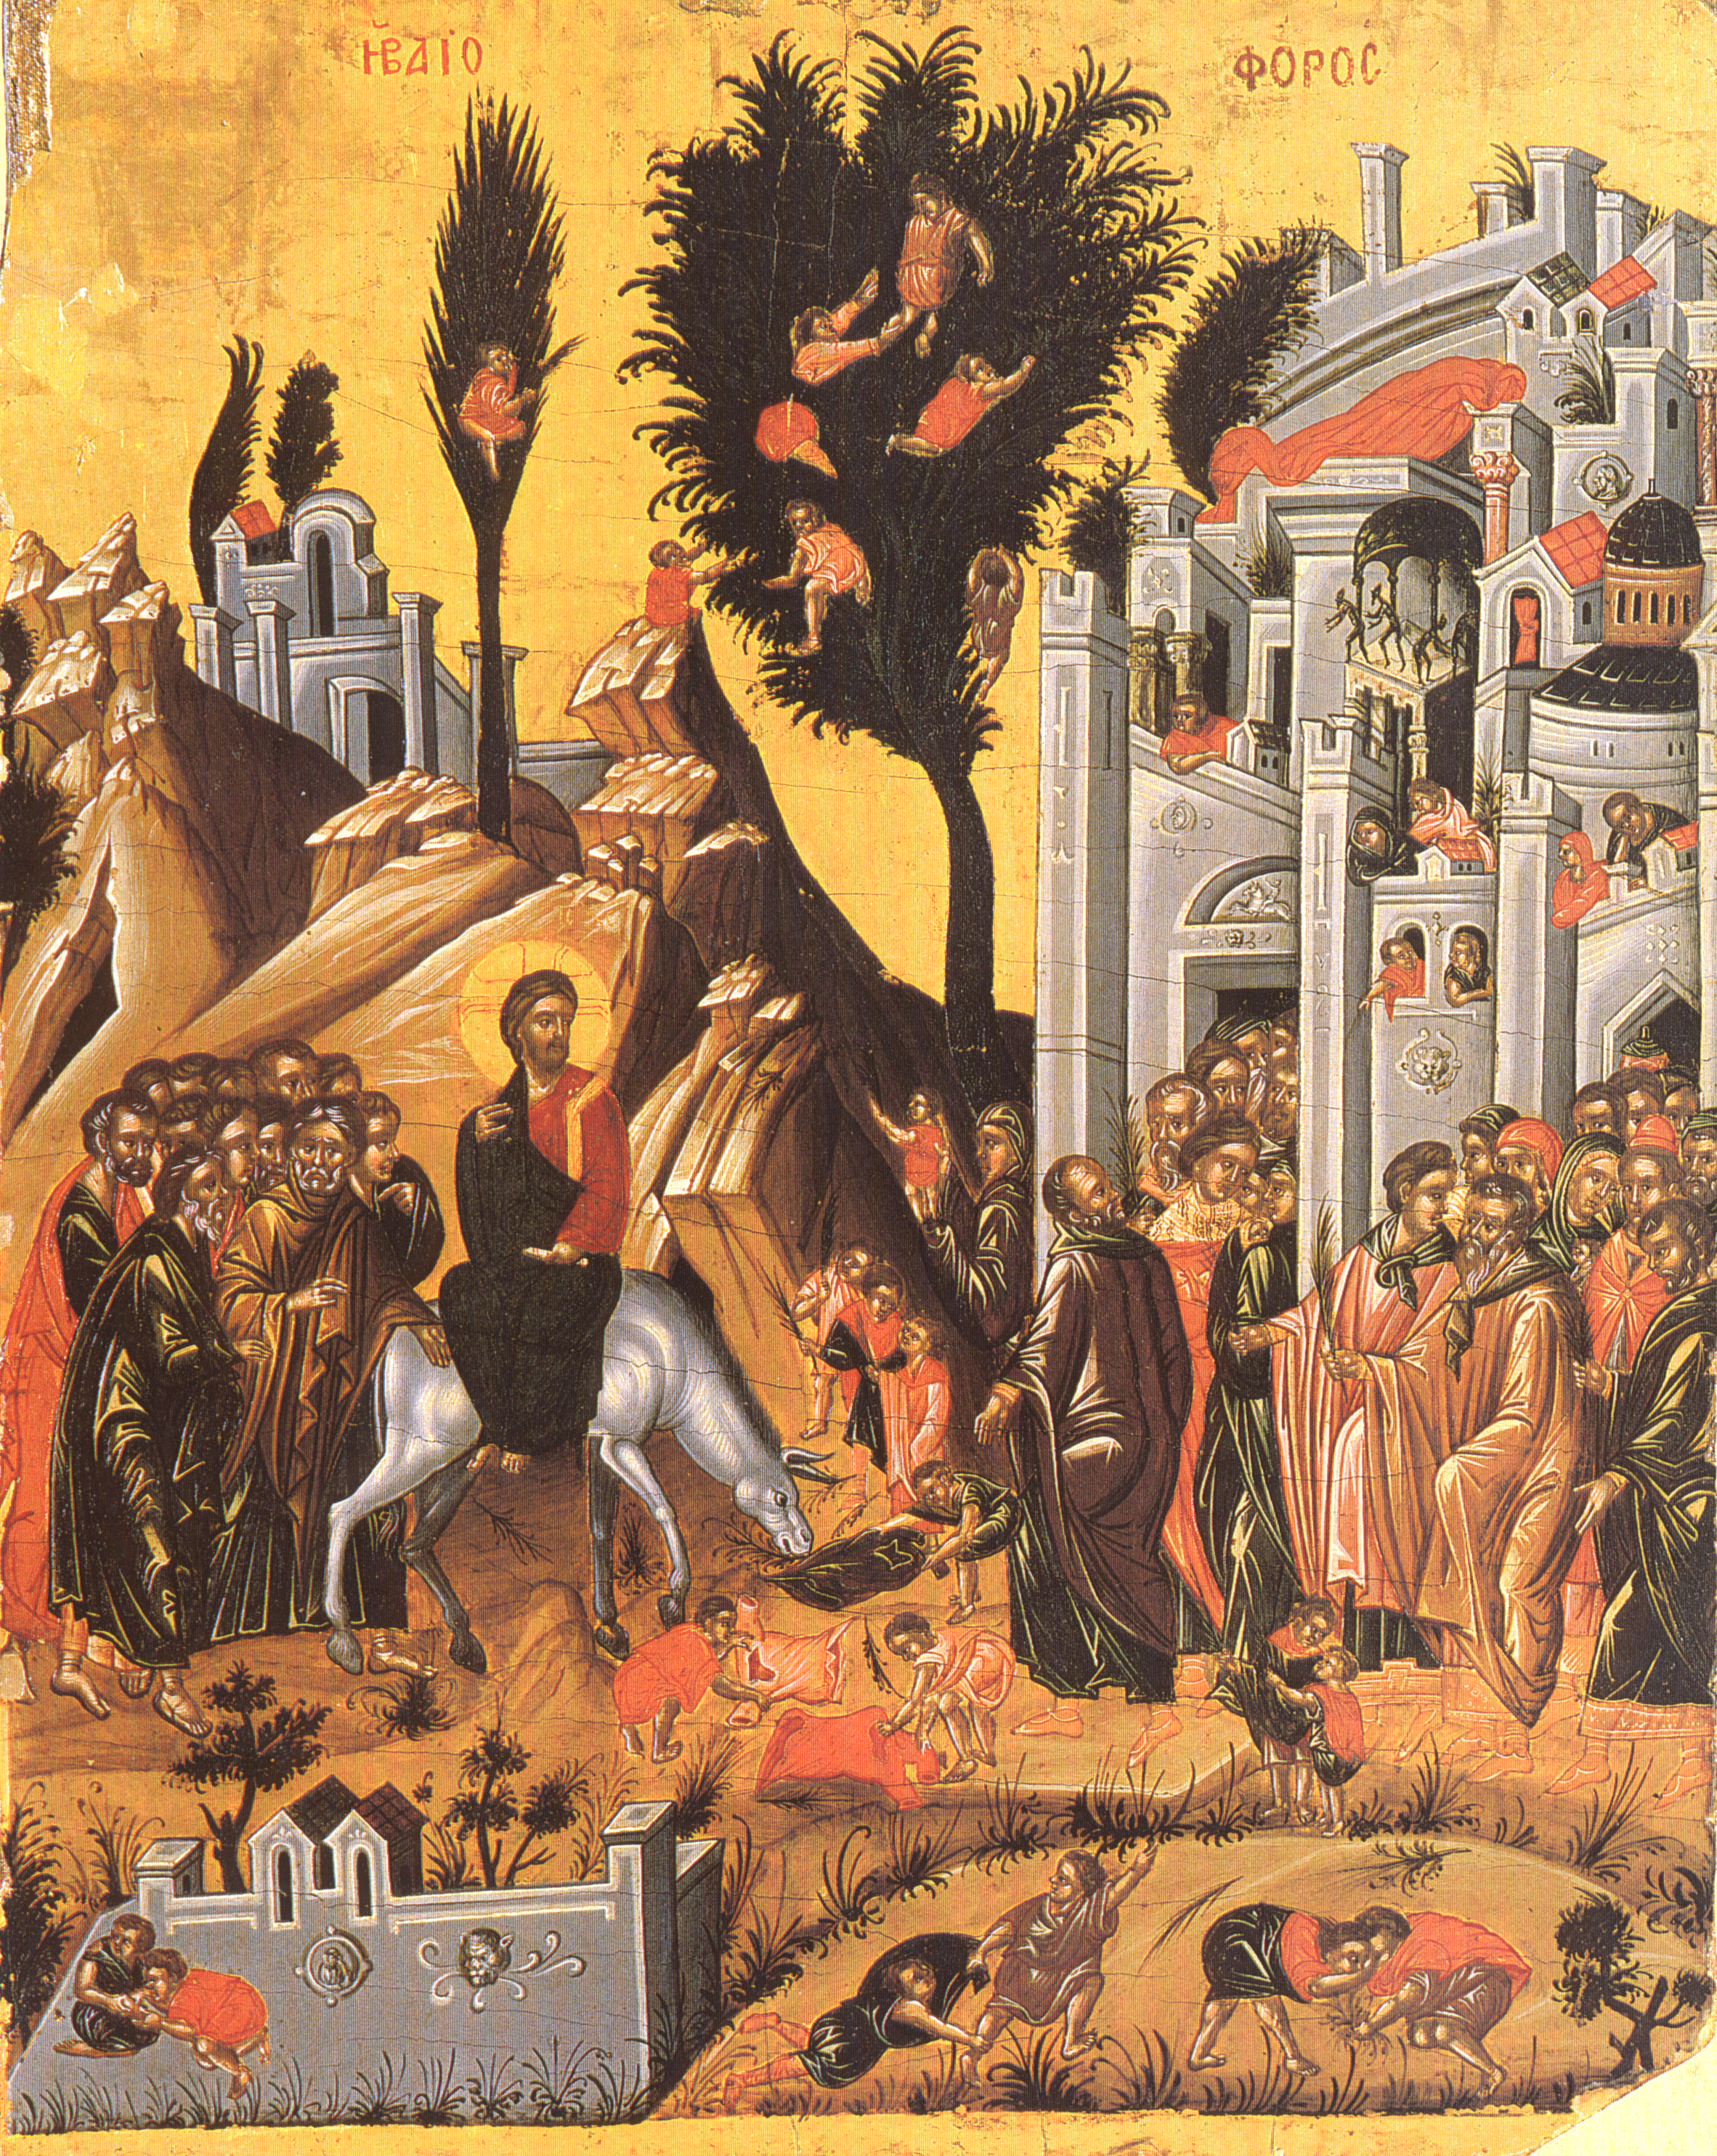 The Lord's Triumphant Entry into Jerusalem